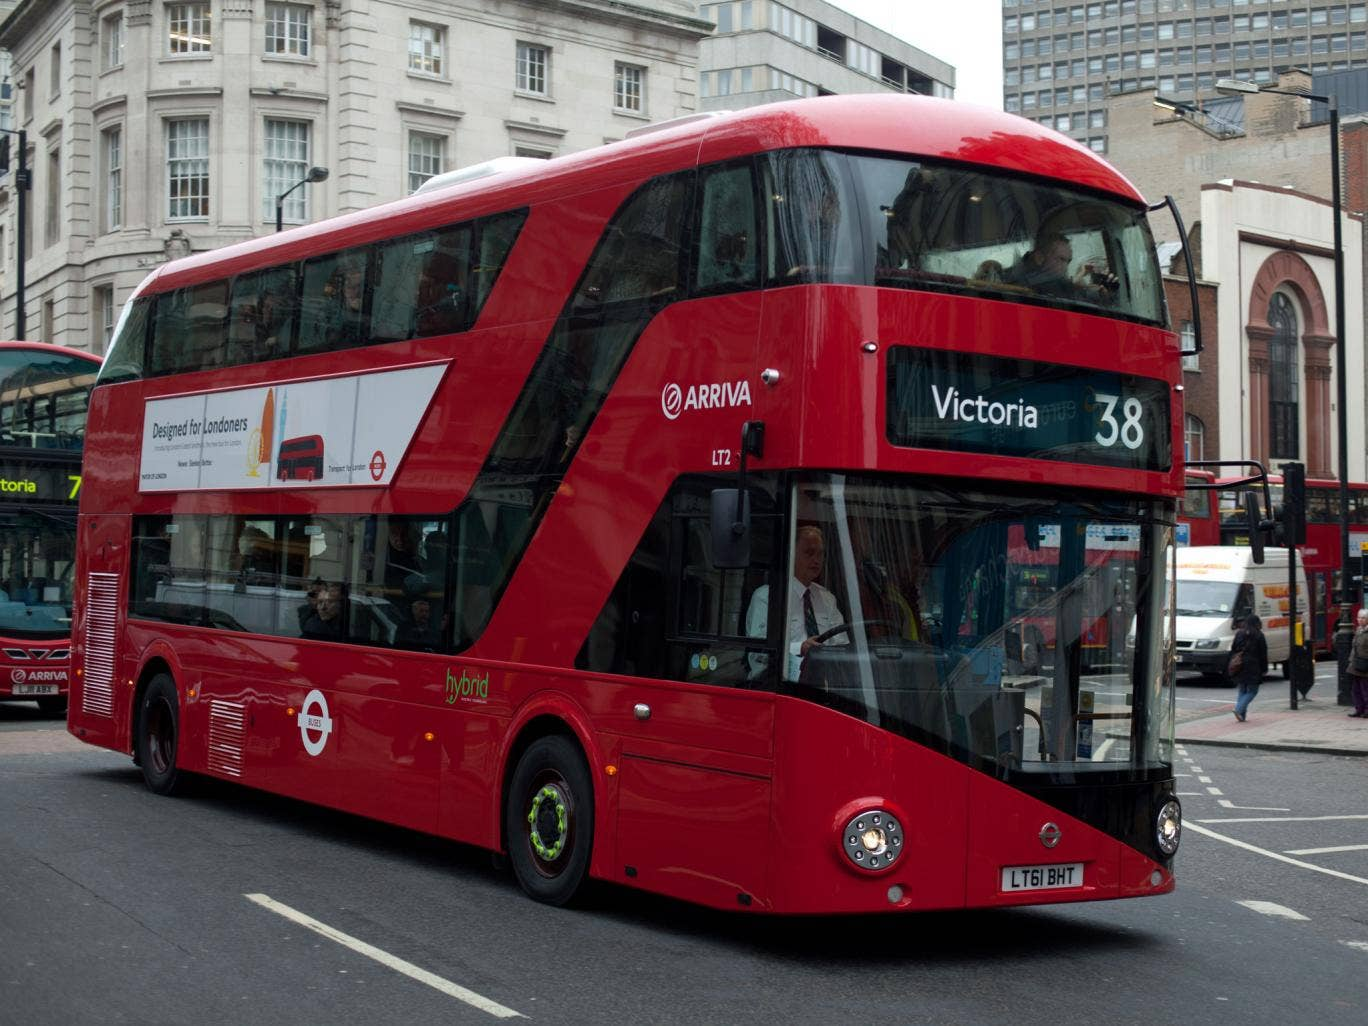 Thomas Heatherwick's new Routemaster. It has the distinctive curves and elegance of the old Routemaster, but unfortunately reduces capacity while increasing costs, says Andrew Adonis.